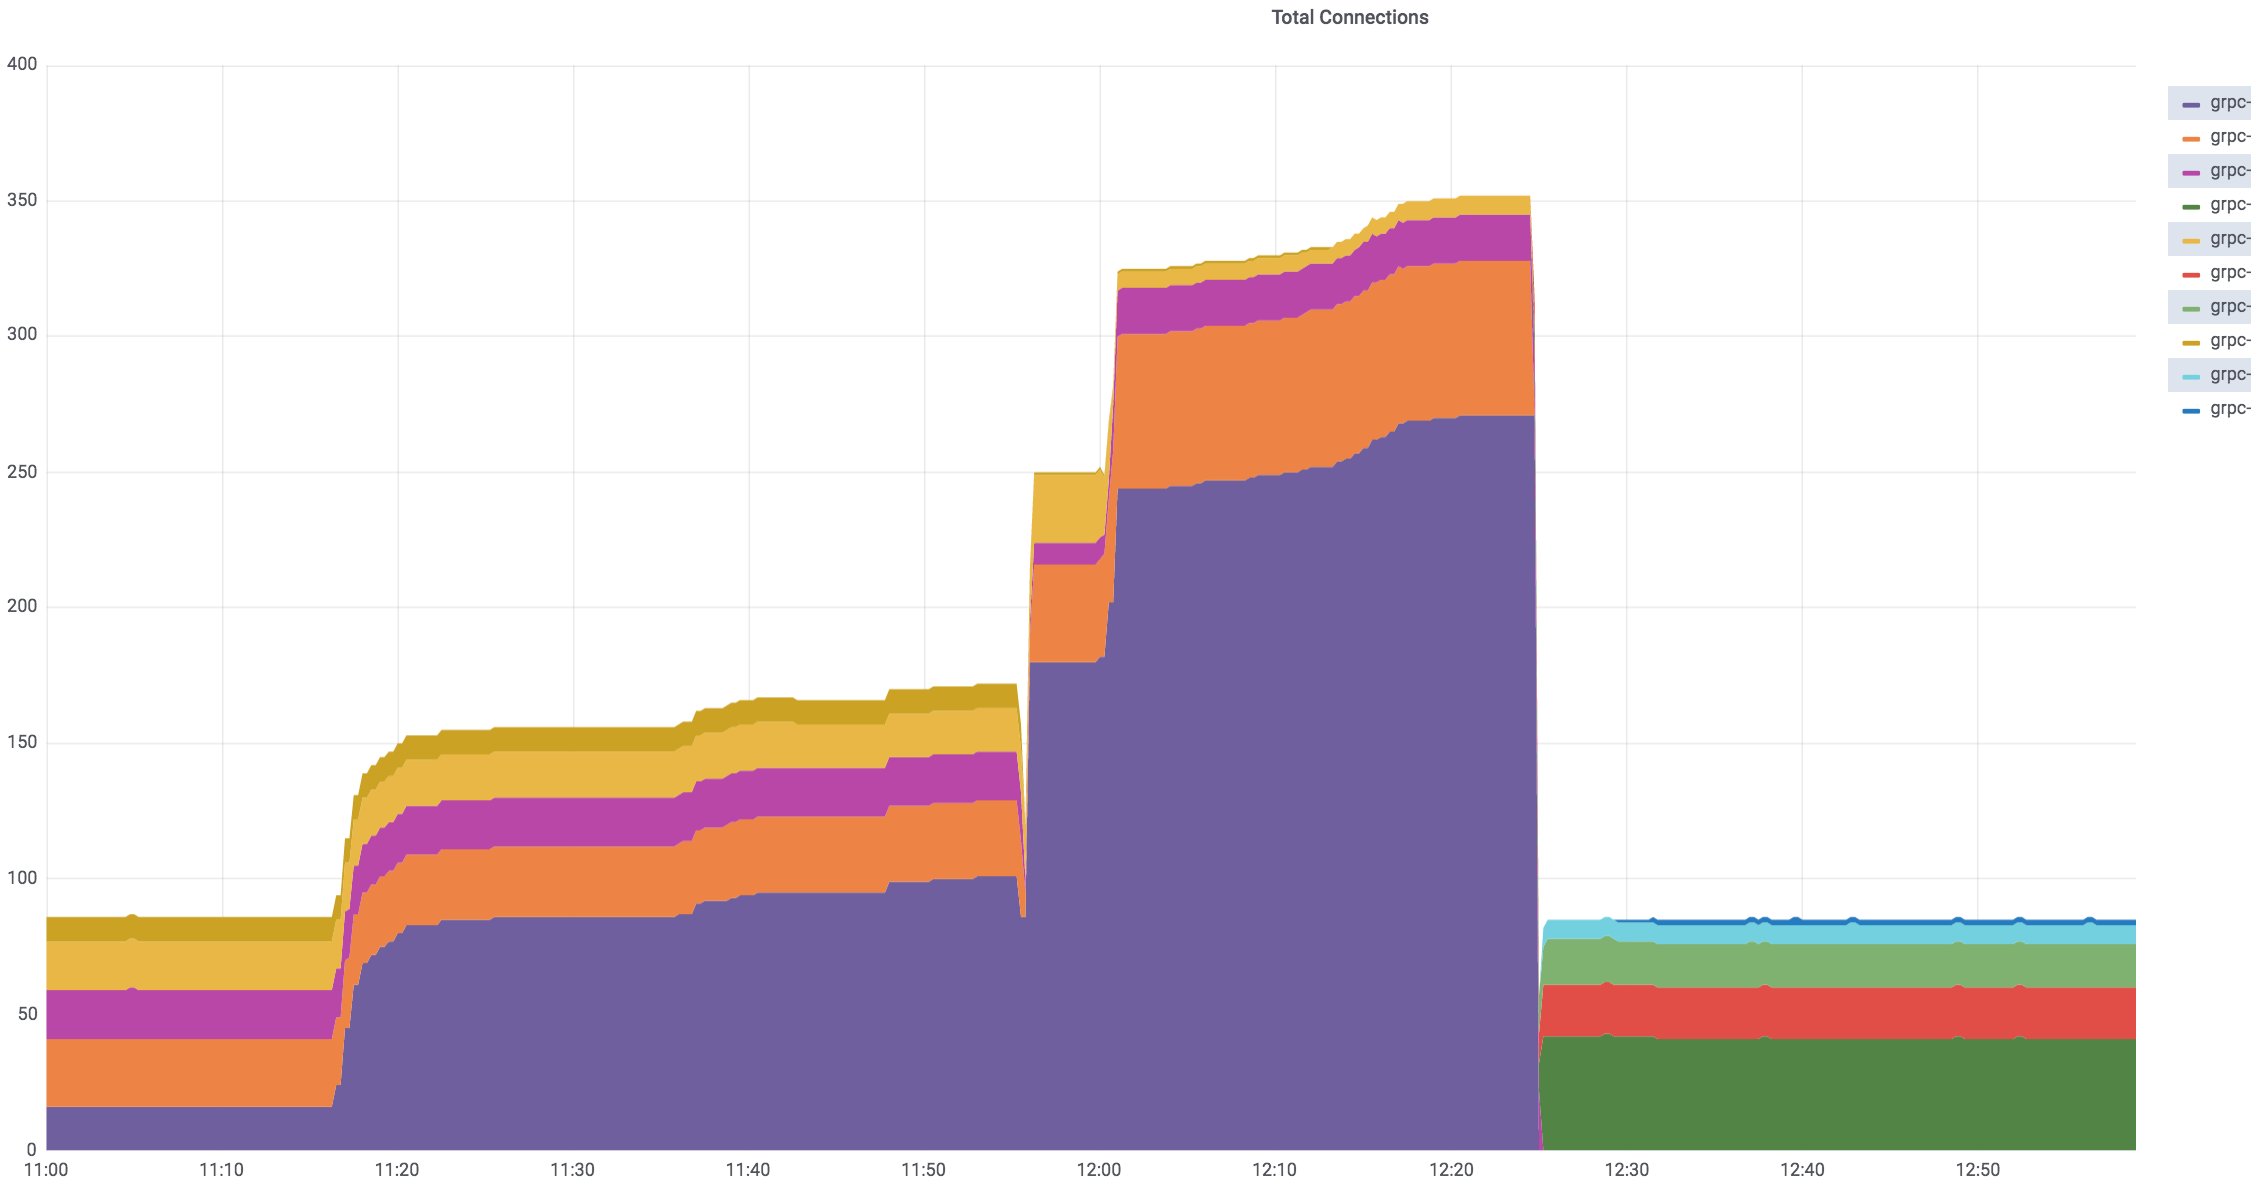 gRPC: disproportionate load balancing after congestion event